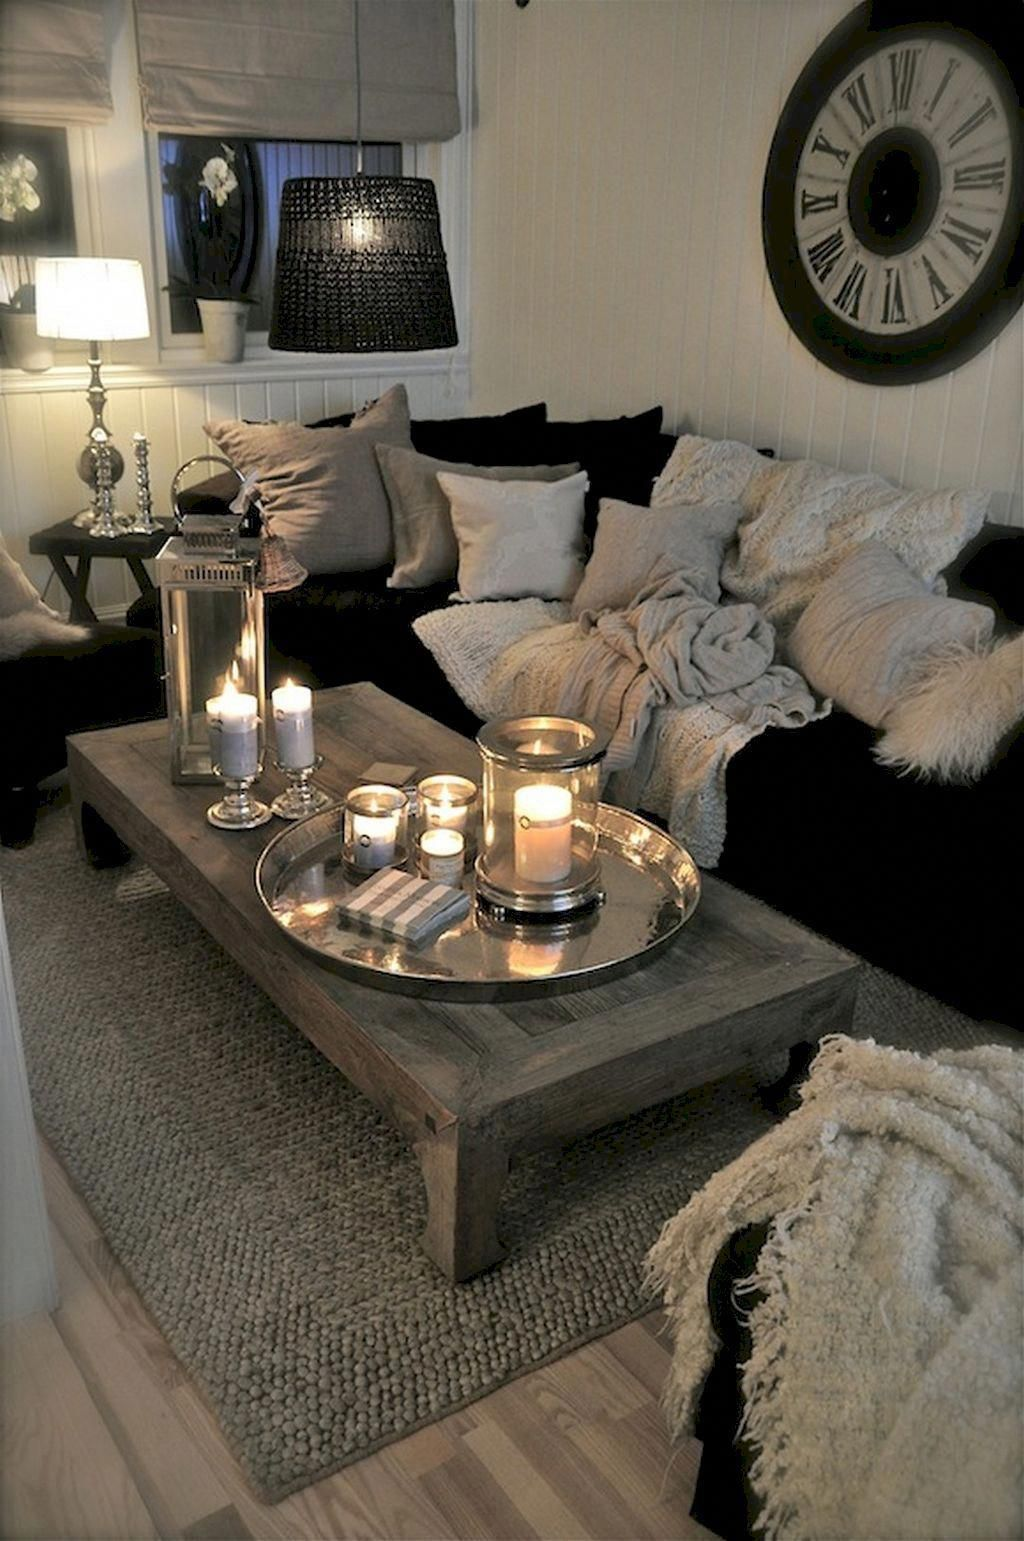 24 cozy living room decor on a budget diyhomedecoronabudgetcountry rh pinterest com living room wall decor ideas on a budget Decorating On a Budget a Guest Room